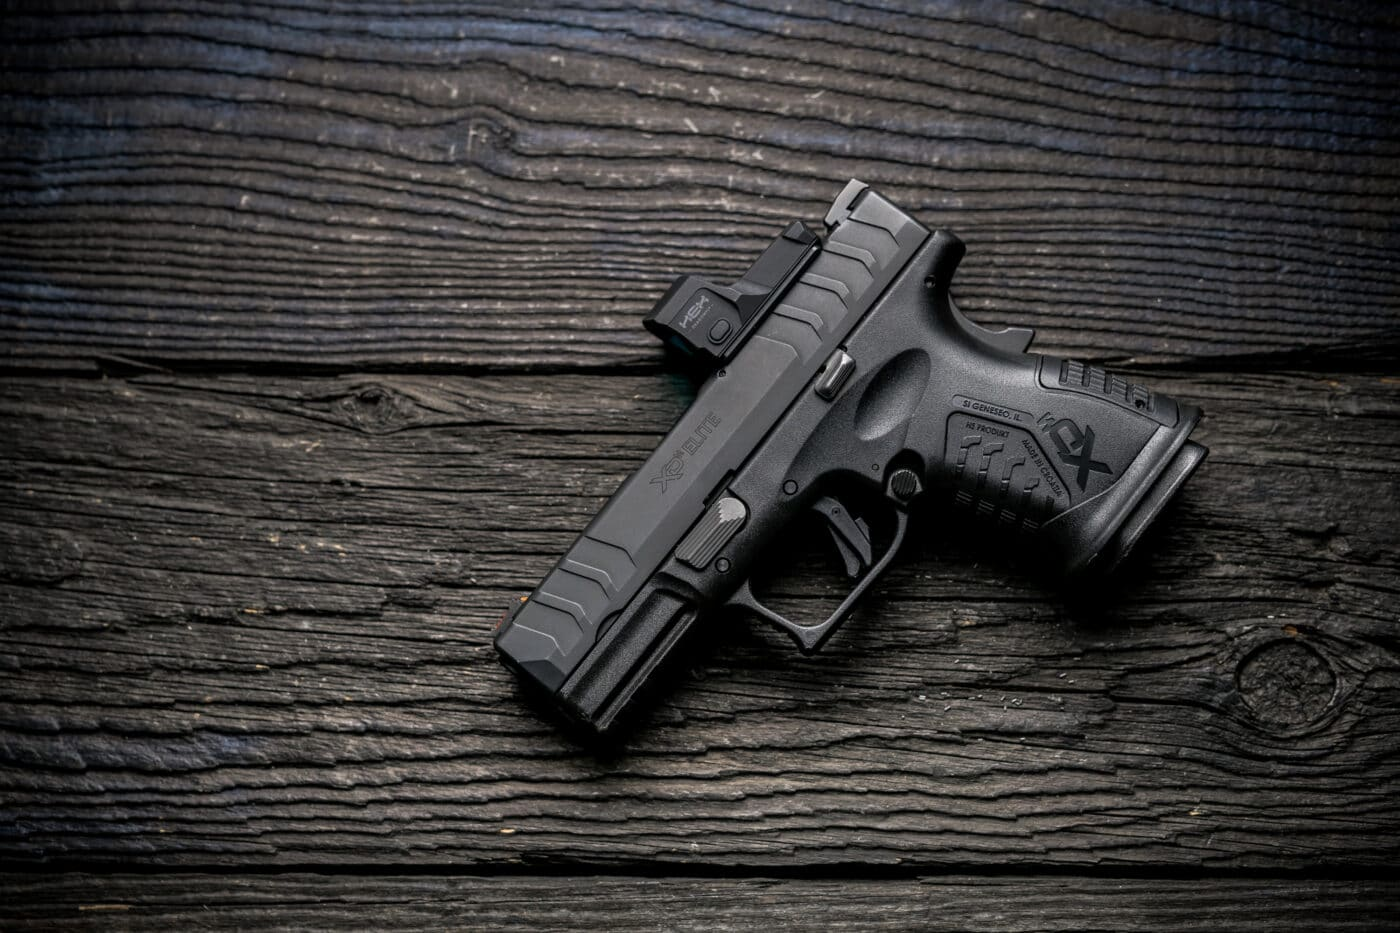 HEX Dragonfly on Springfield Armory XD-M Elite Compact OSP 10mm pistol